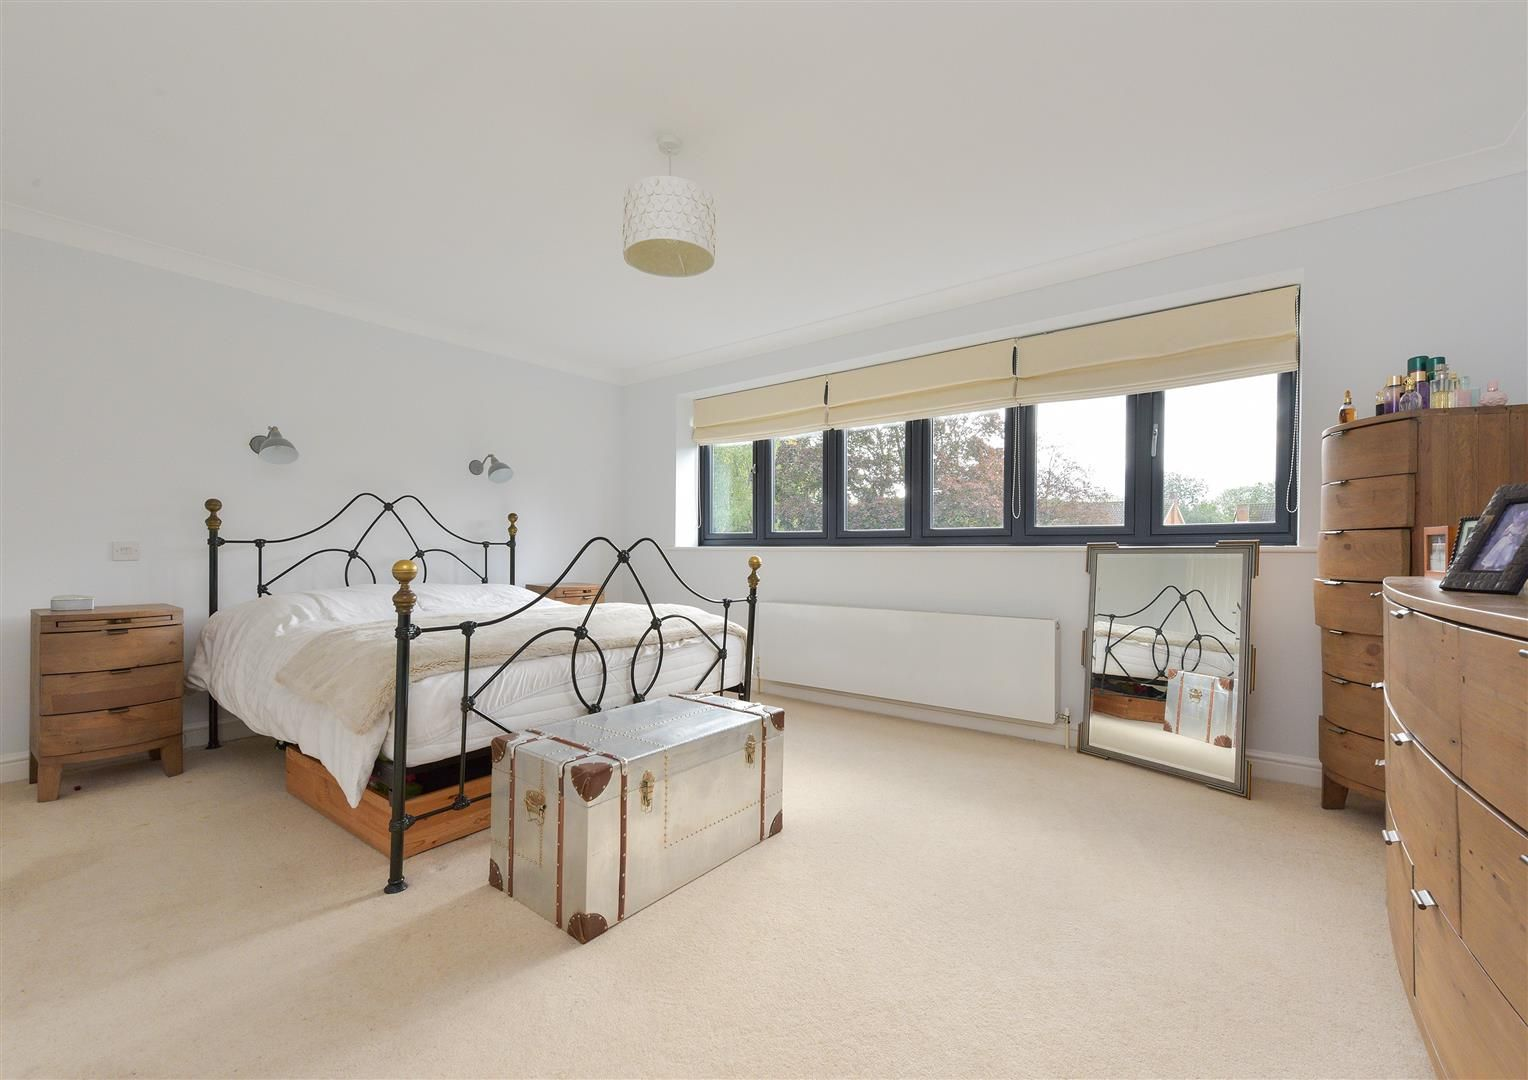 5 bed house for sale in Hagley  - Property Image 15